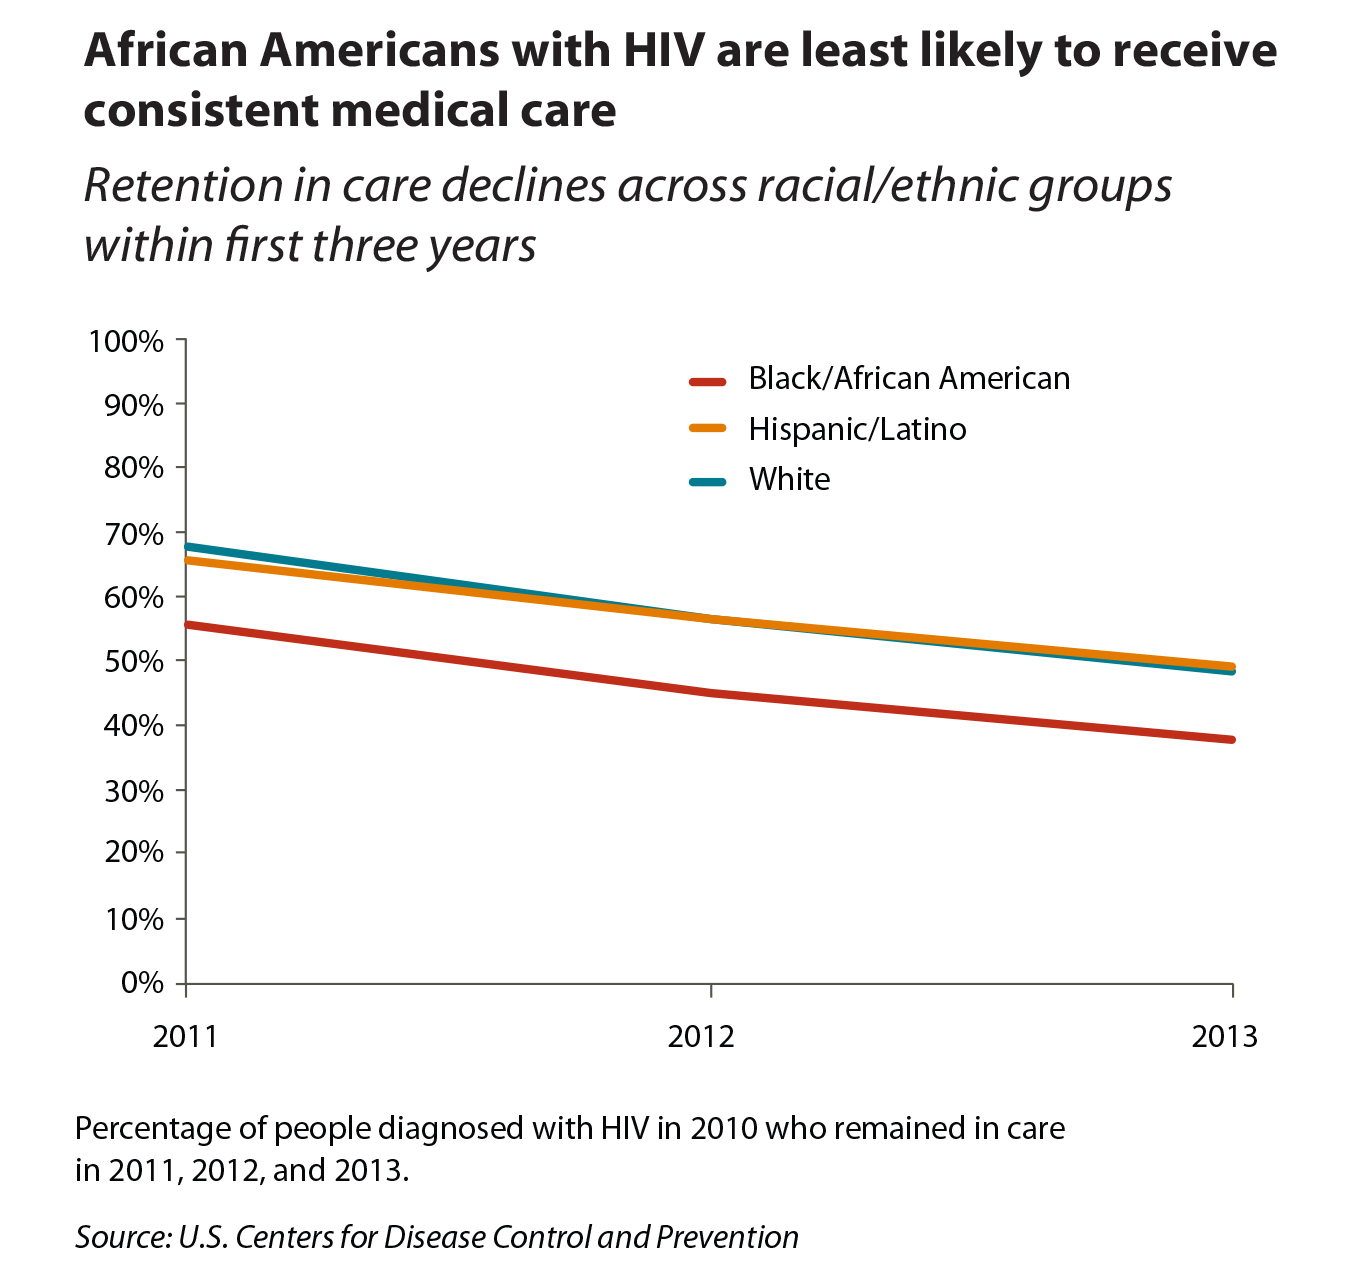 Graph showing African Americans with HIV are least likely to receive consistent medical care compared to Hispanics/Latinos and Whites.